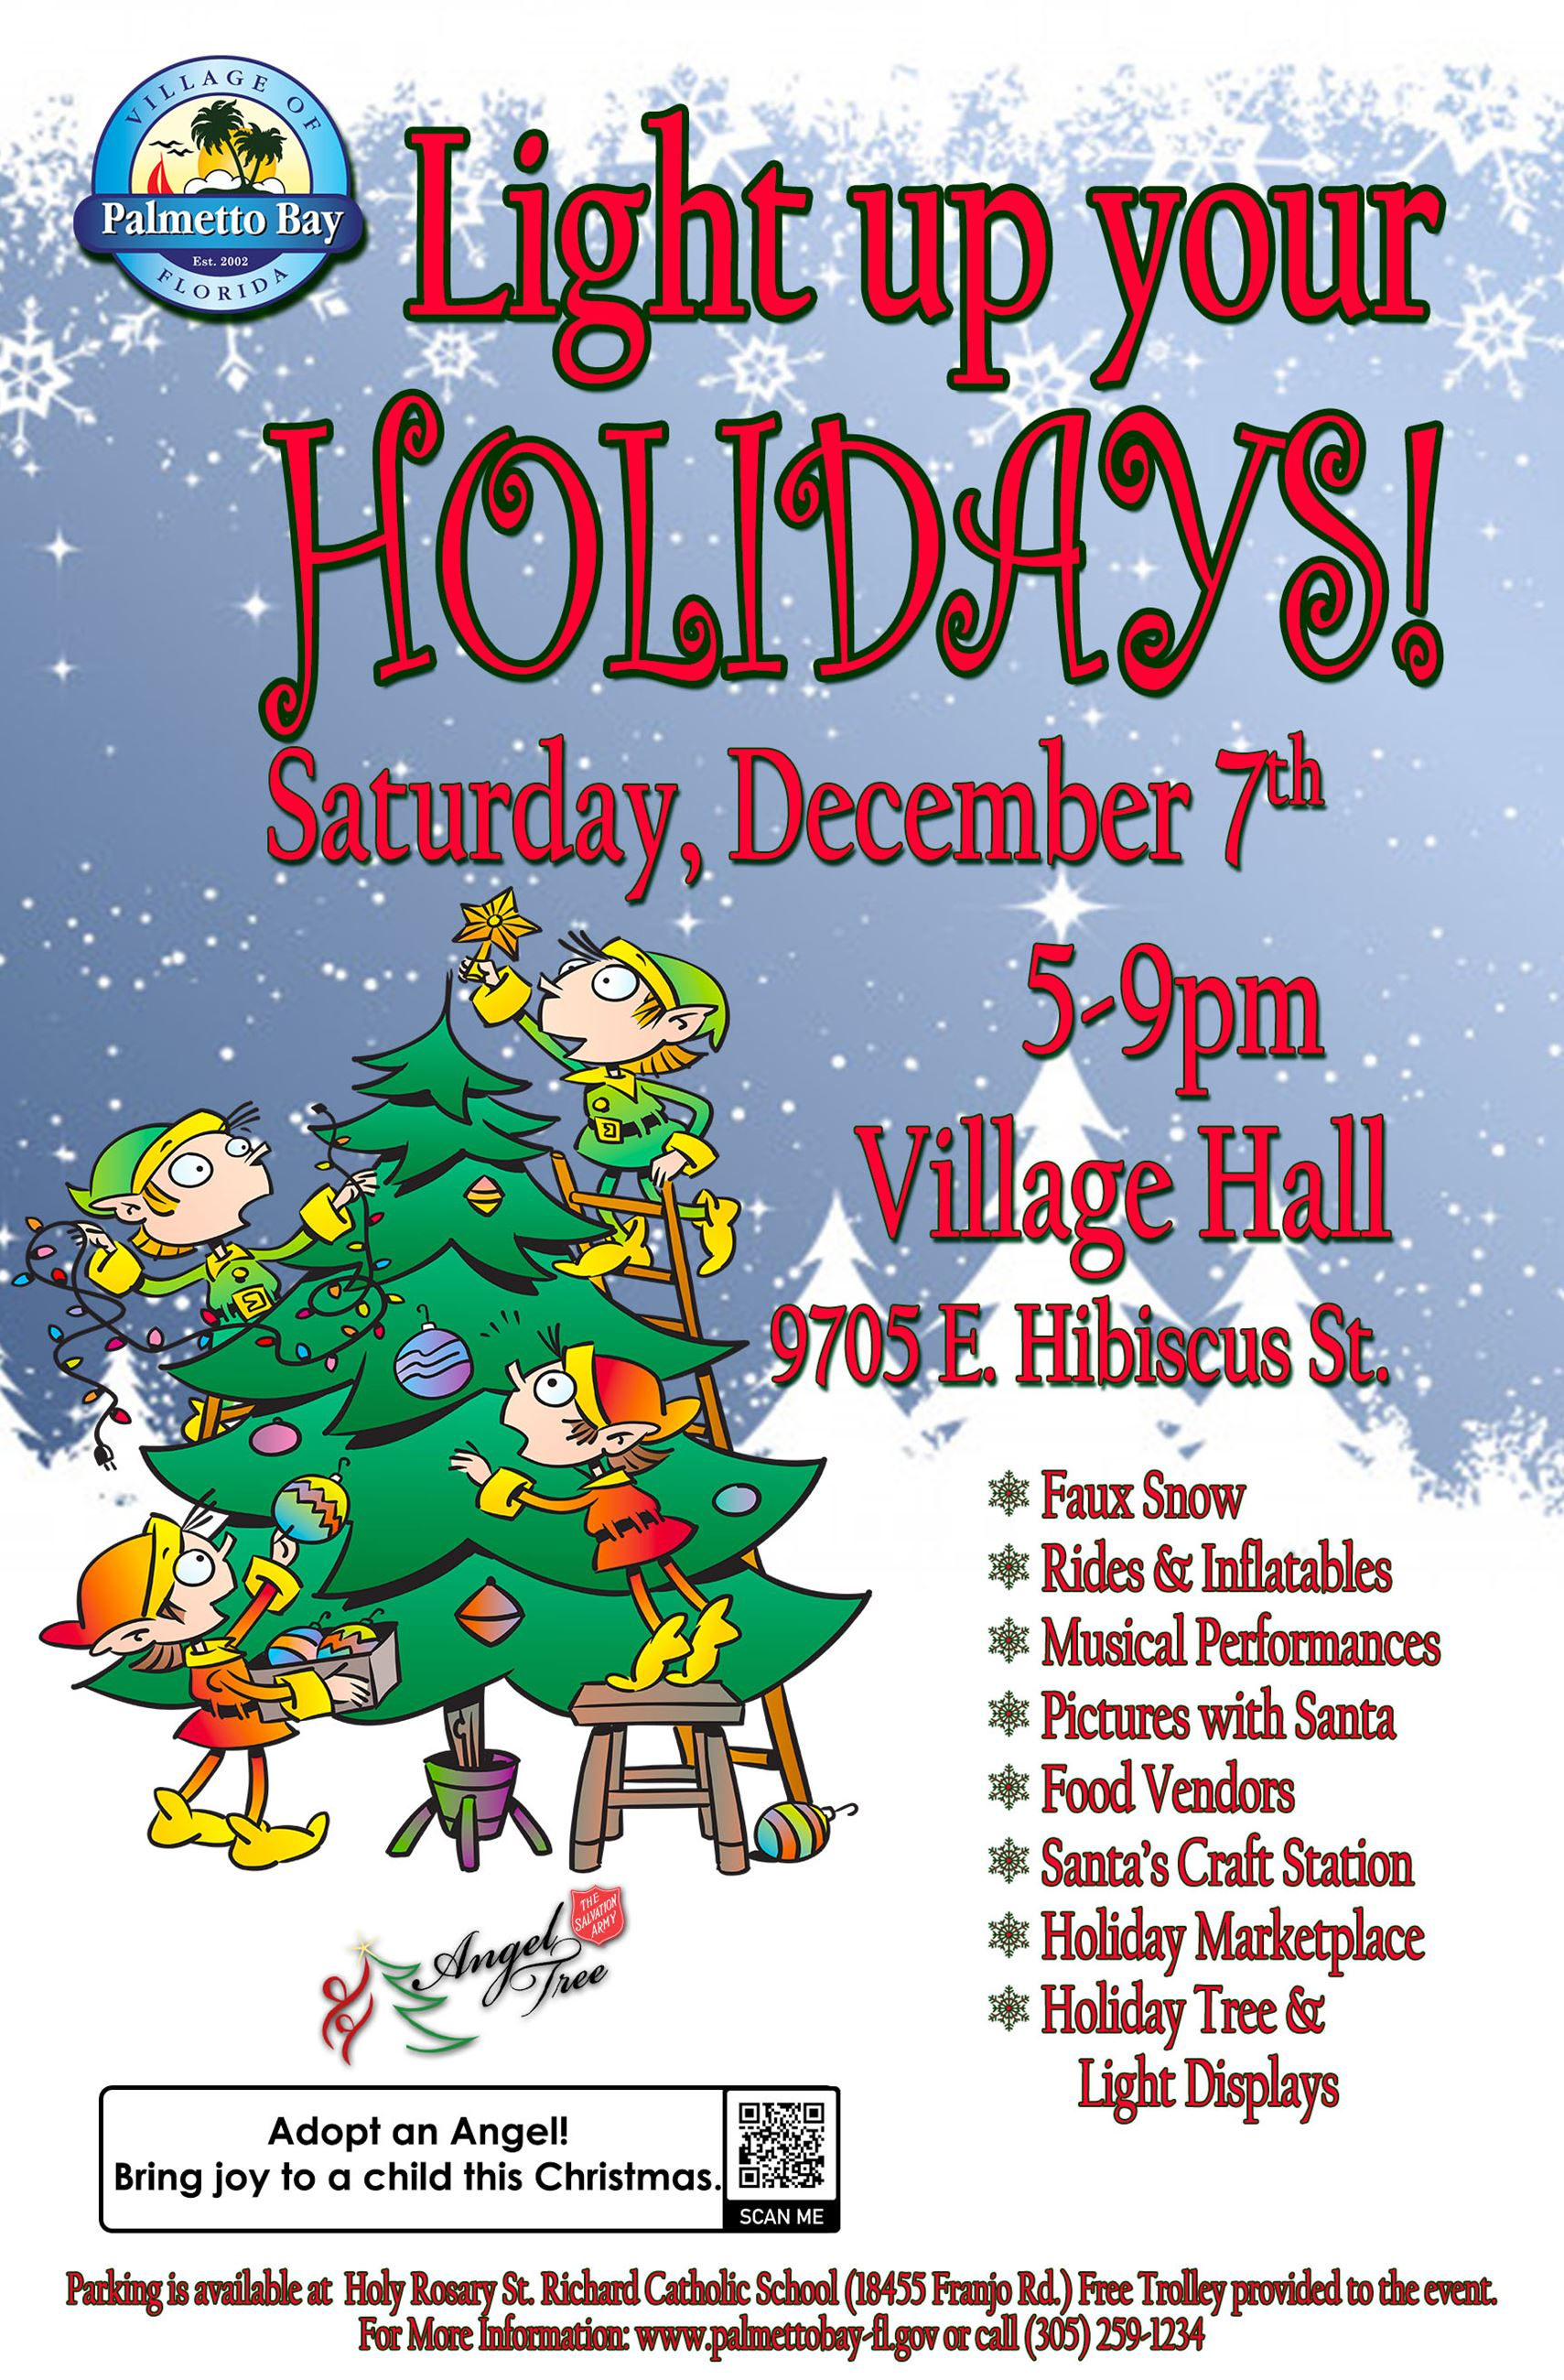 Light Up Your Holidays, Saturday, December 7th at Village Hall from 5p-9p